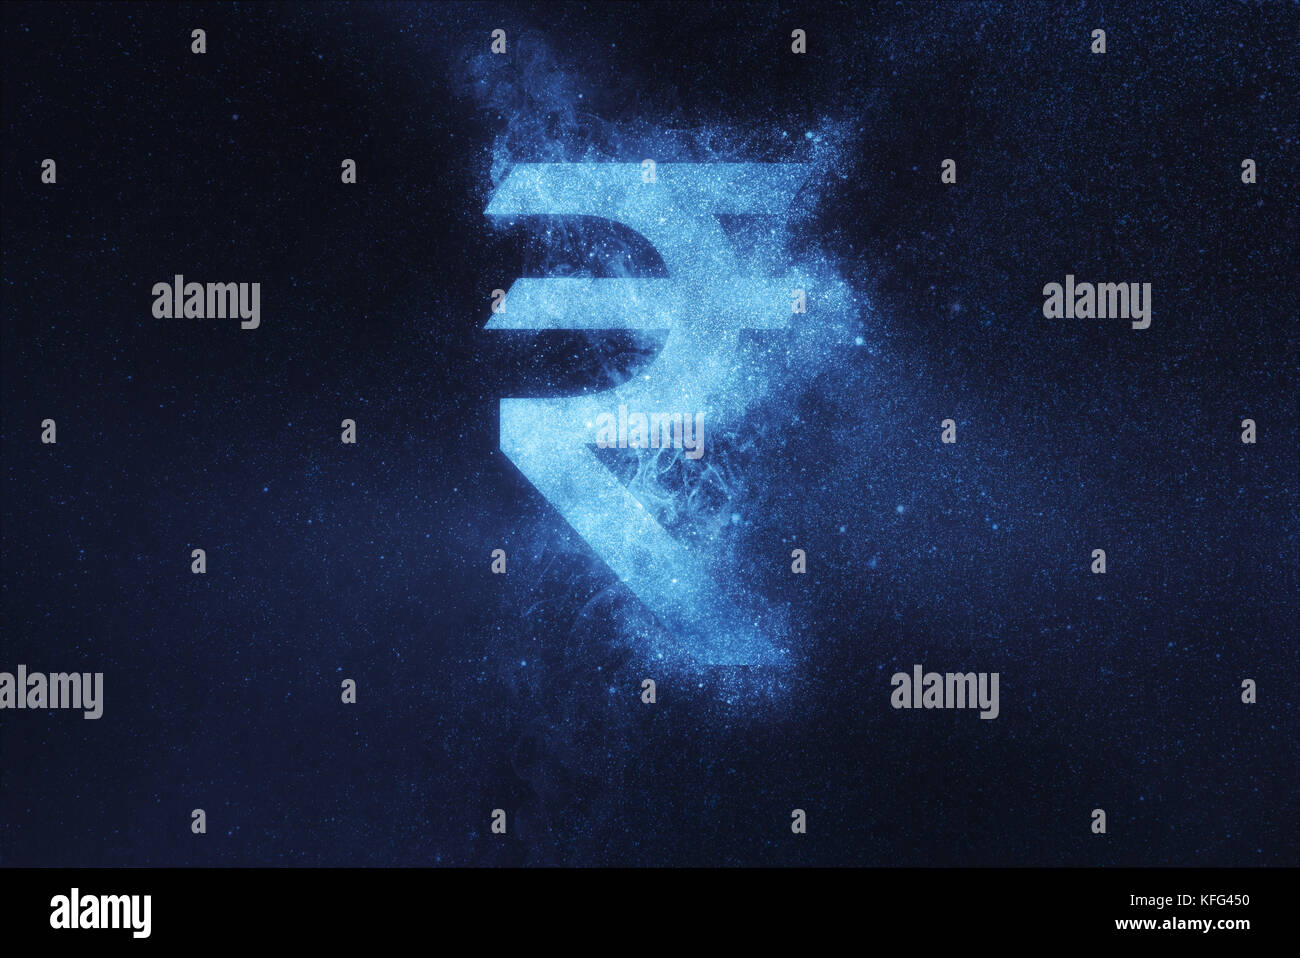 Indian Currency Symbol Stock Photos & Indian Currency